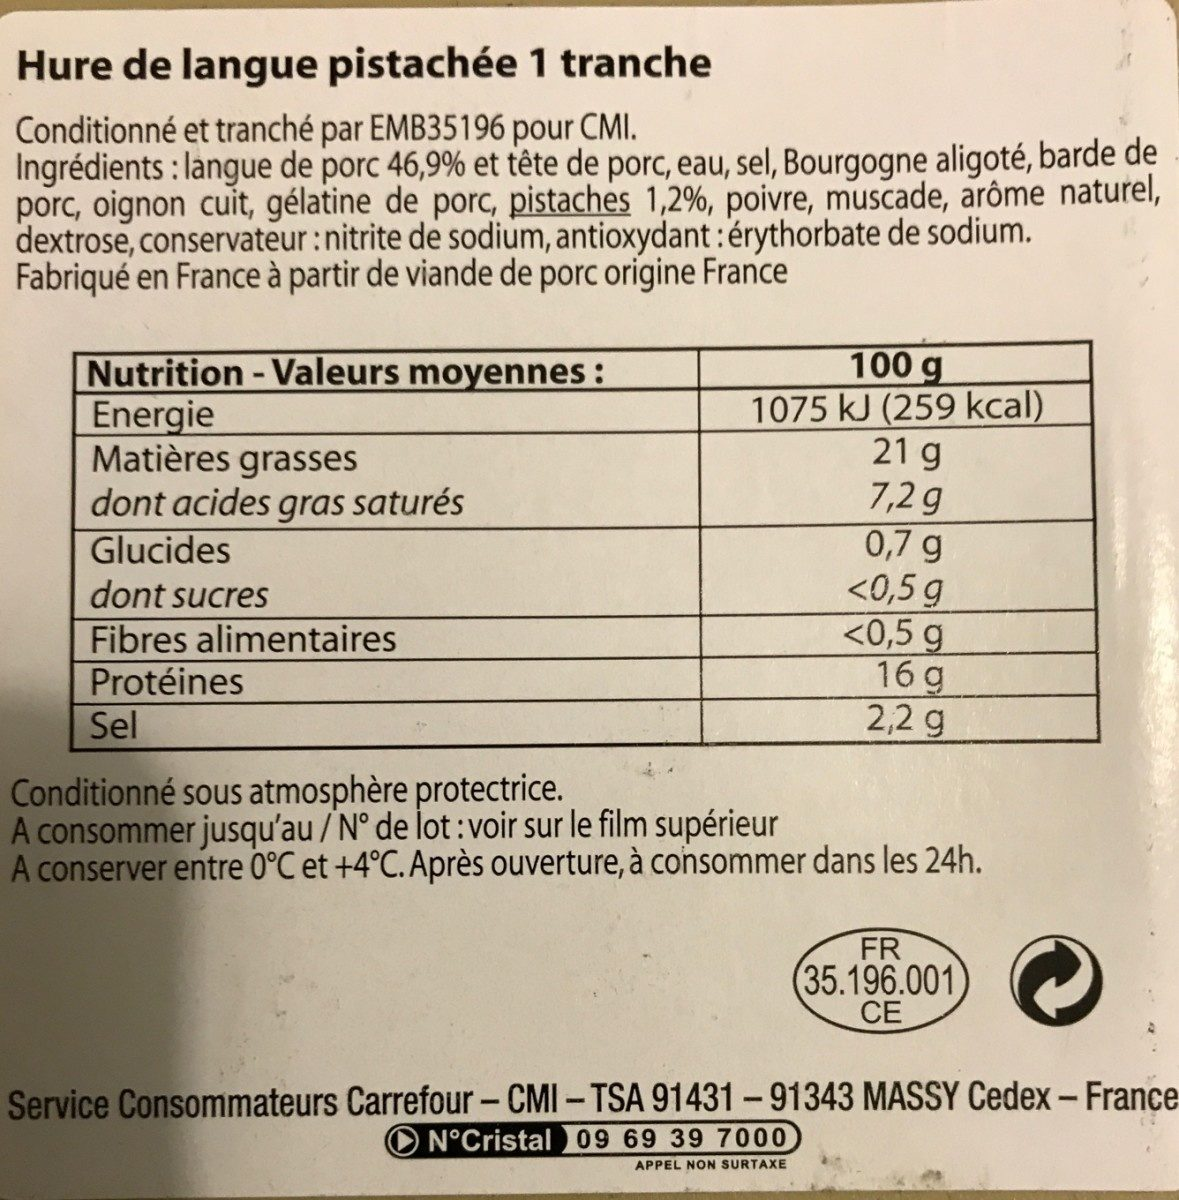 Hure de langue pistachée - Ingredients - fr